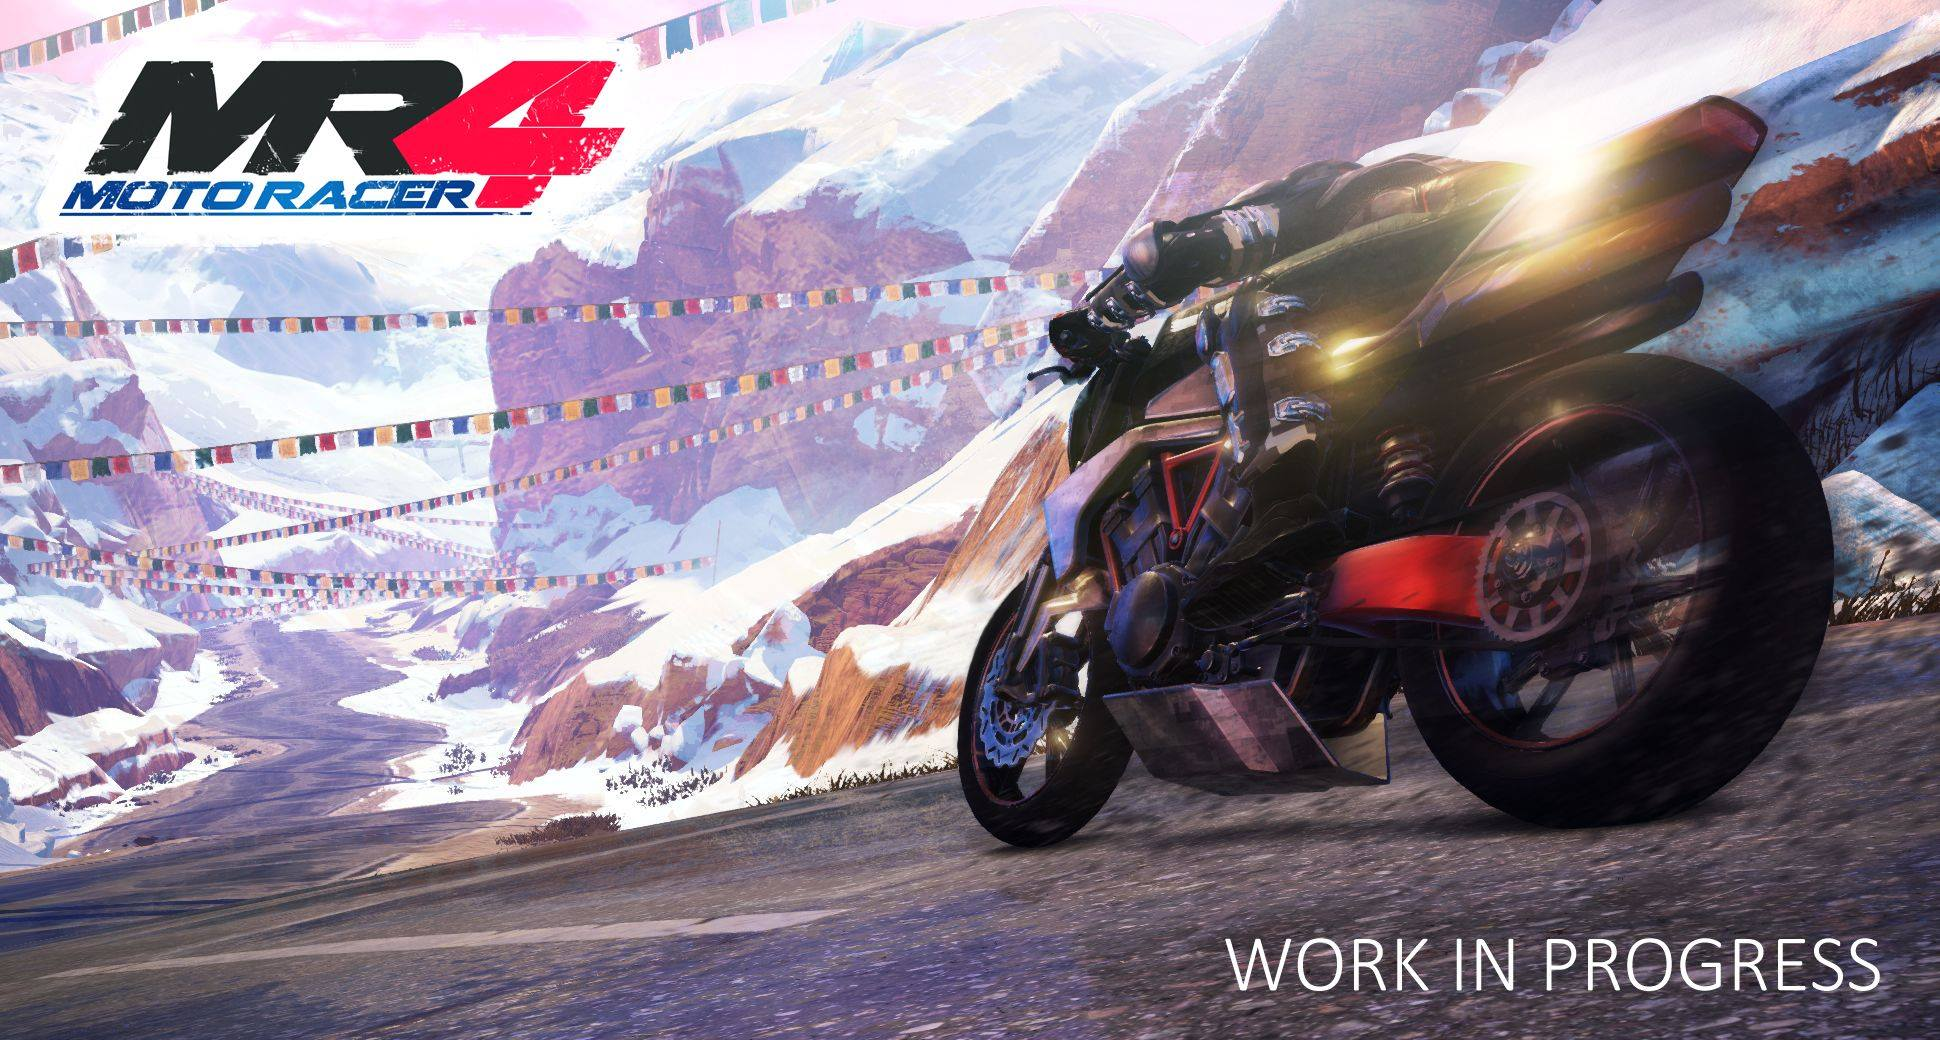 Moto Racer 4 landing on PS4, Xbox One and PC in October